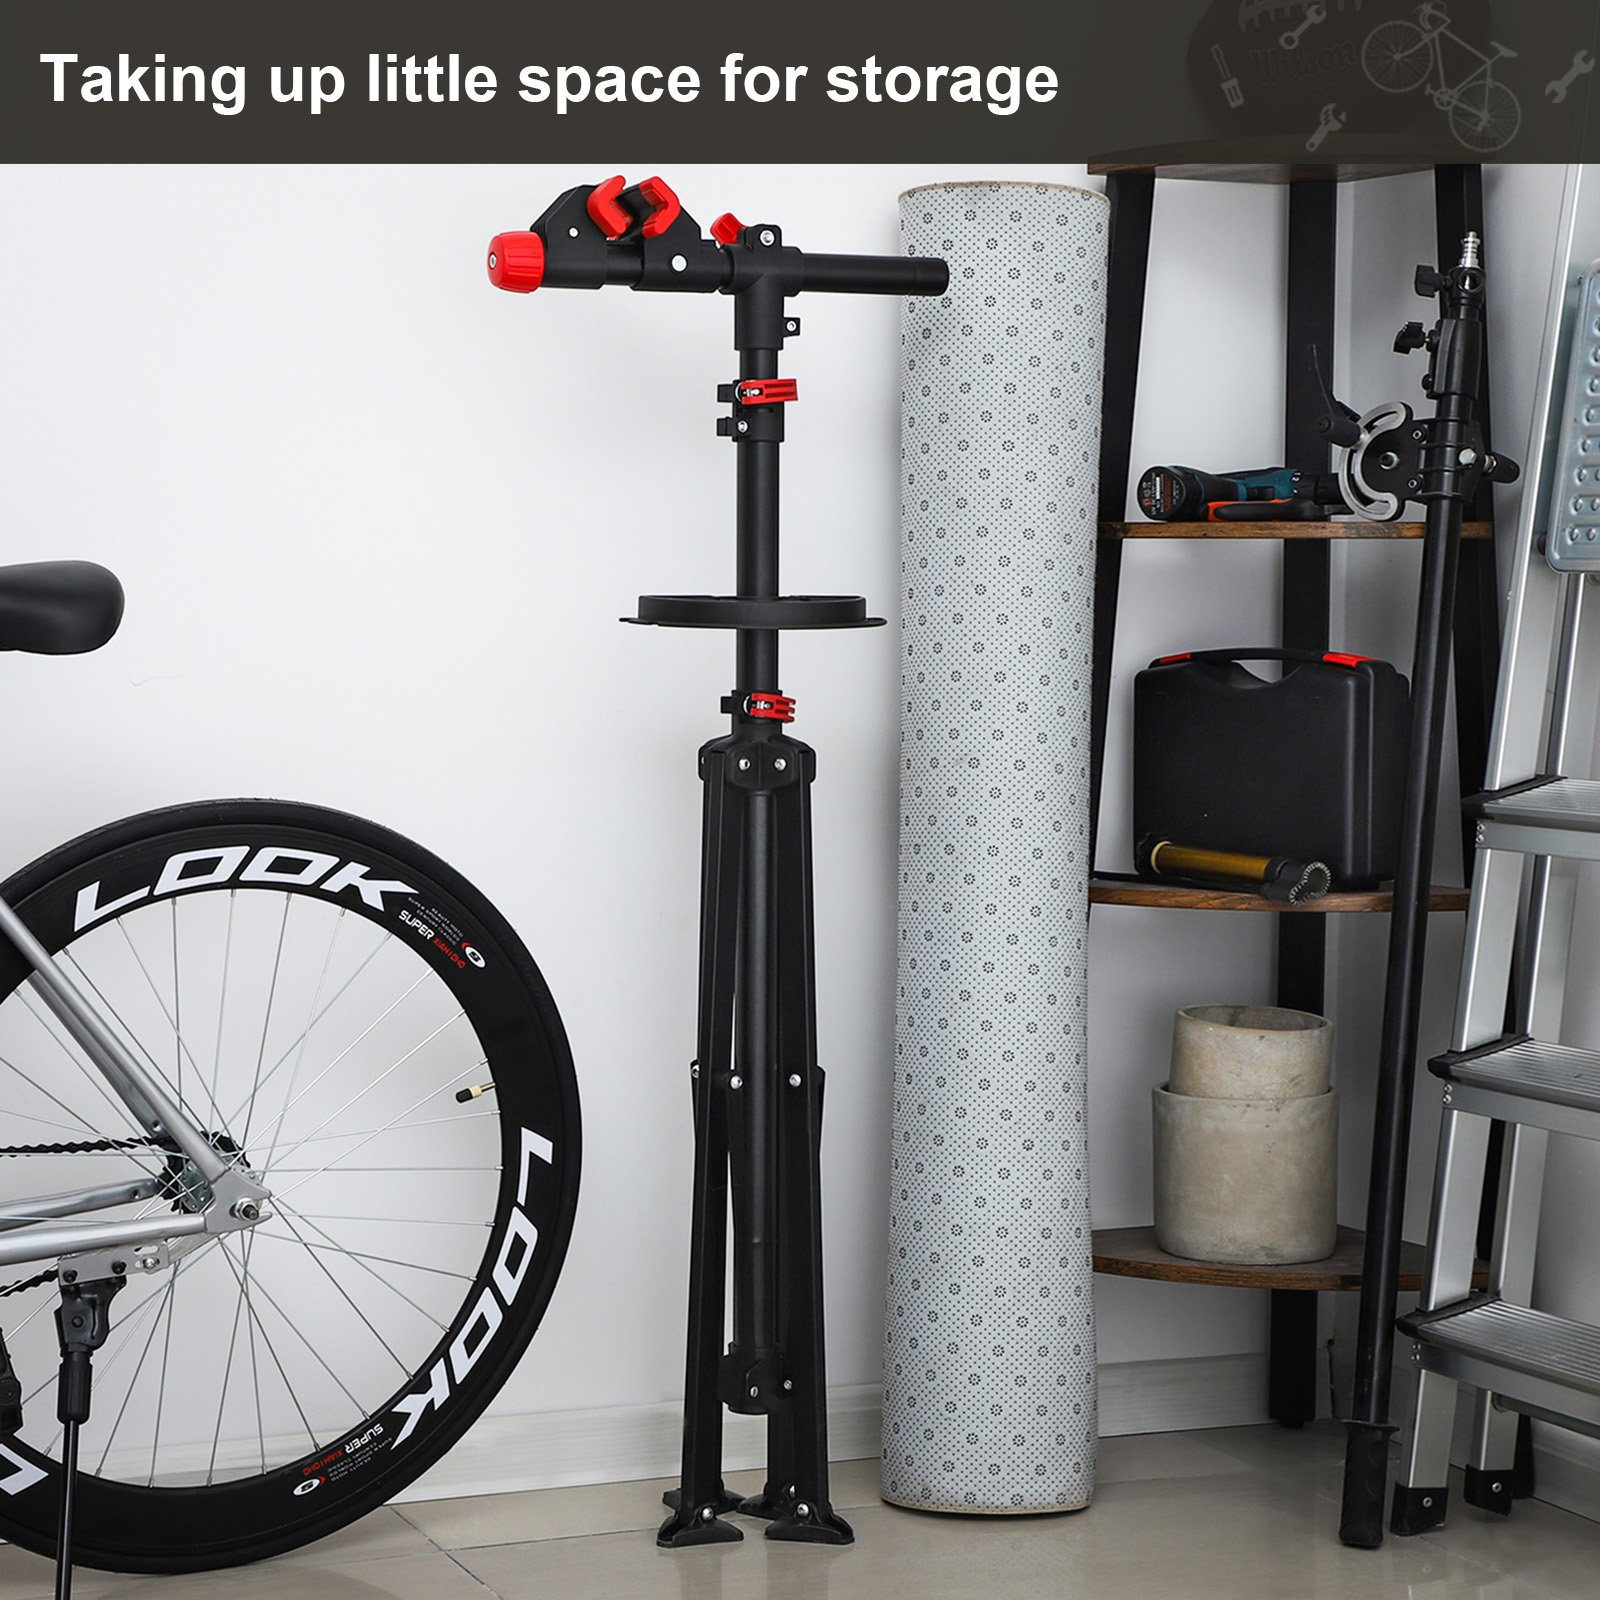 SONGMICS Pro Mechanic Bike Repair Stand with Tool Tray Telescopic Bicycle Maintenance Rack Workstand Lightweight and Portable USBR02B by SONGMICS (Image #5)